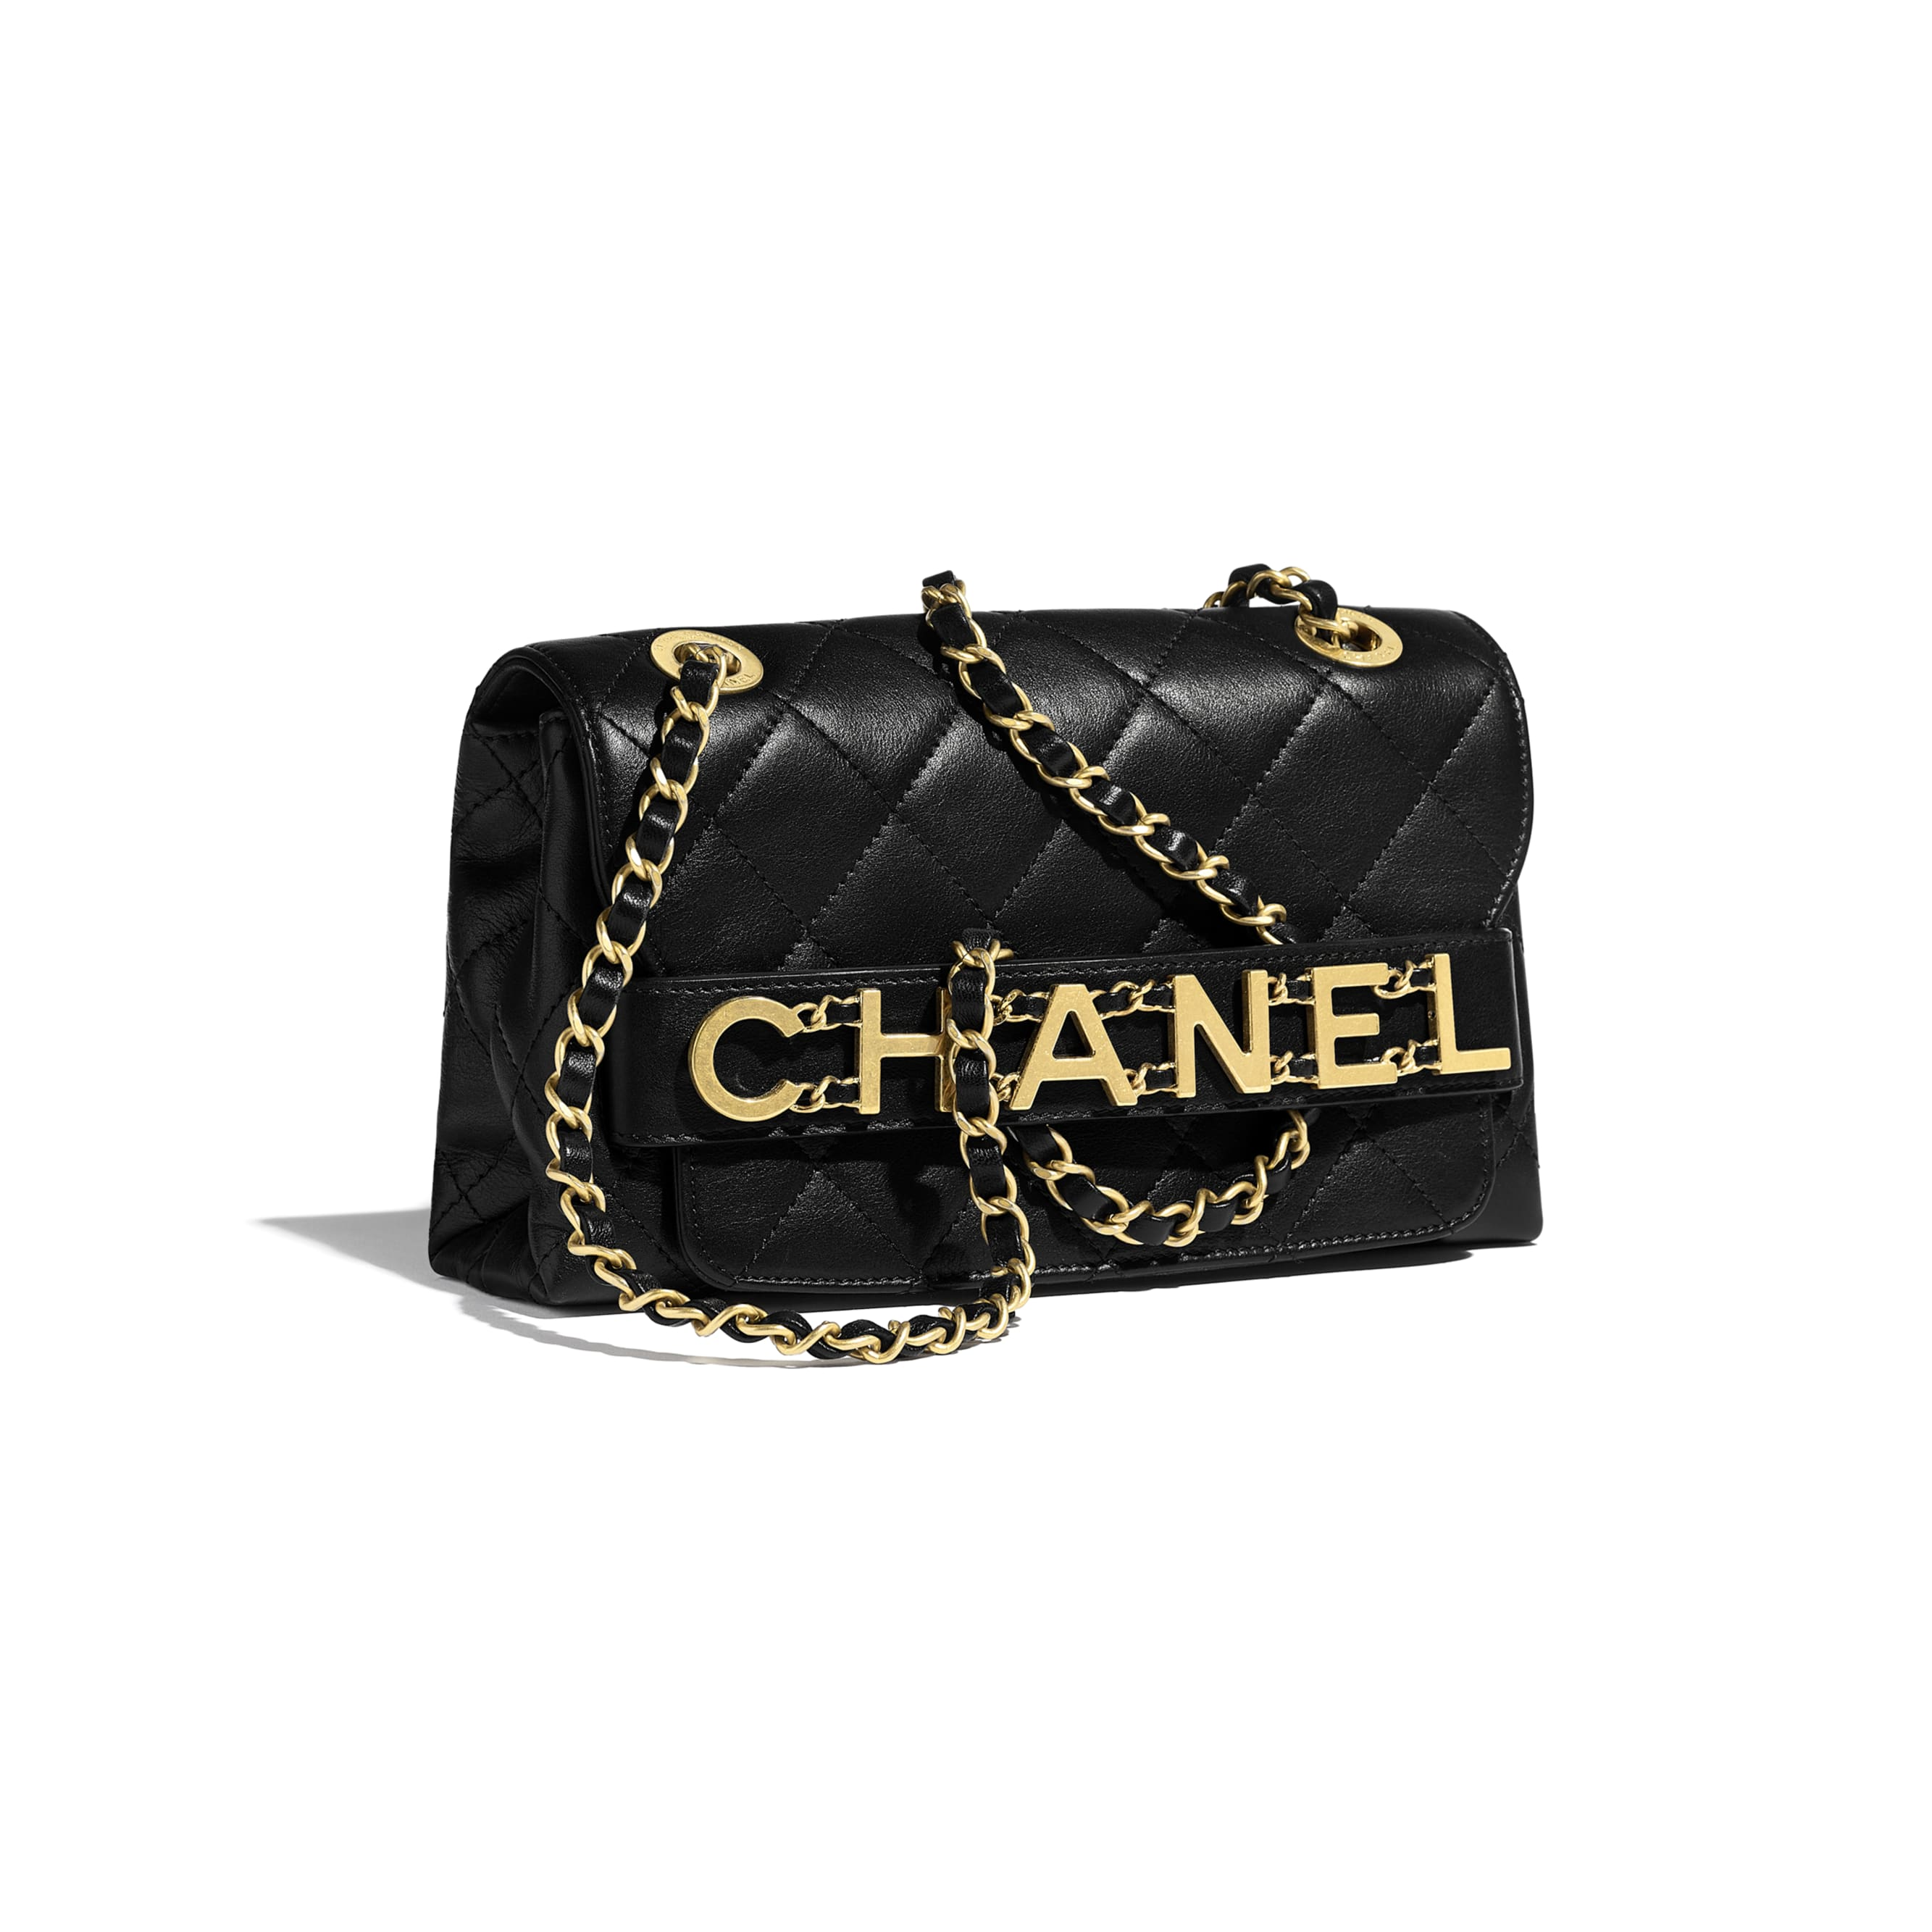 Small Flap Bag - Black - Calfskin & Gold-Tone Metal - CHANEL - Extra view - see standard sized version